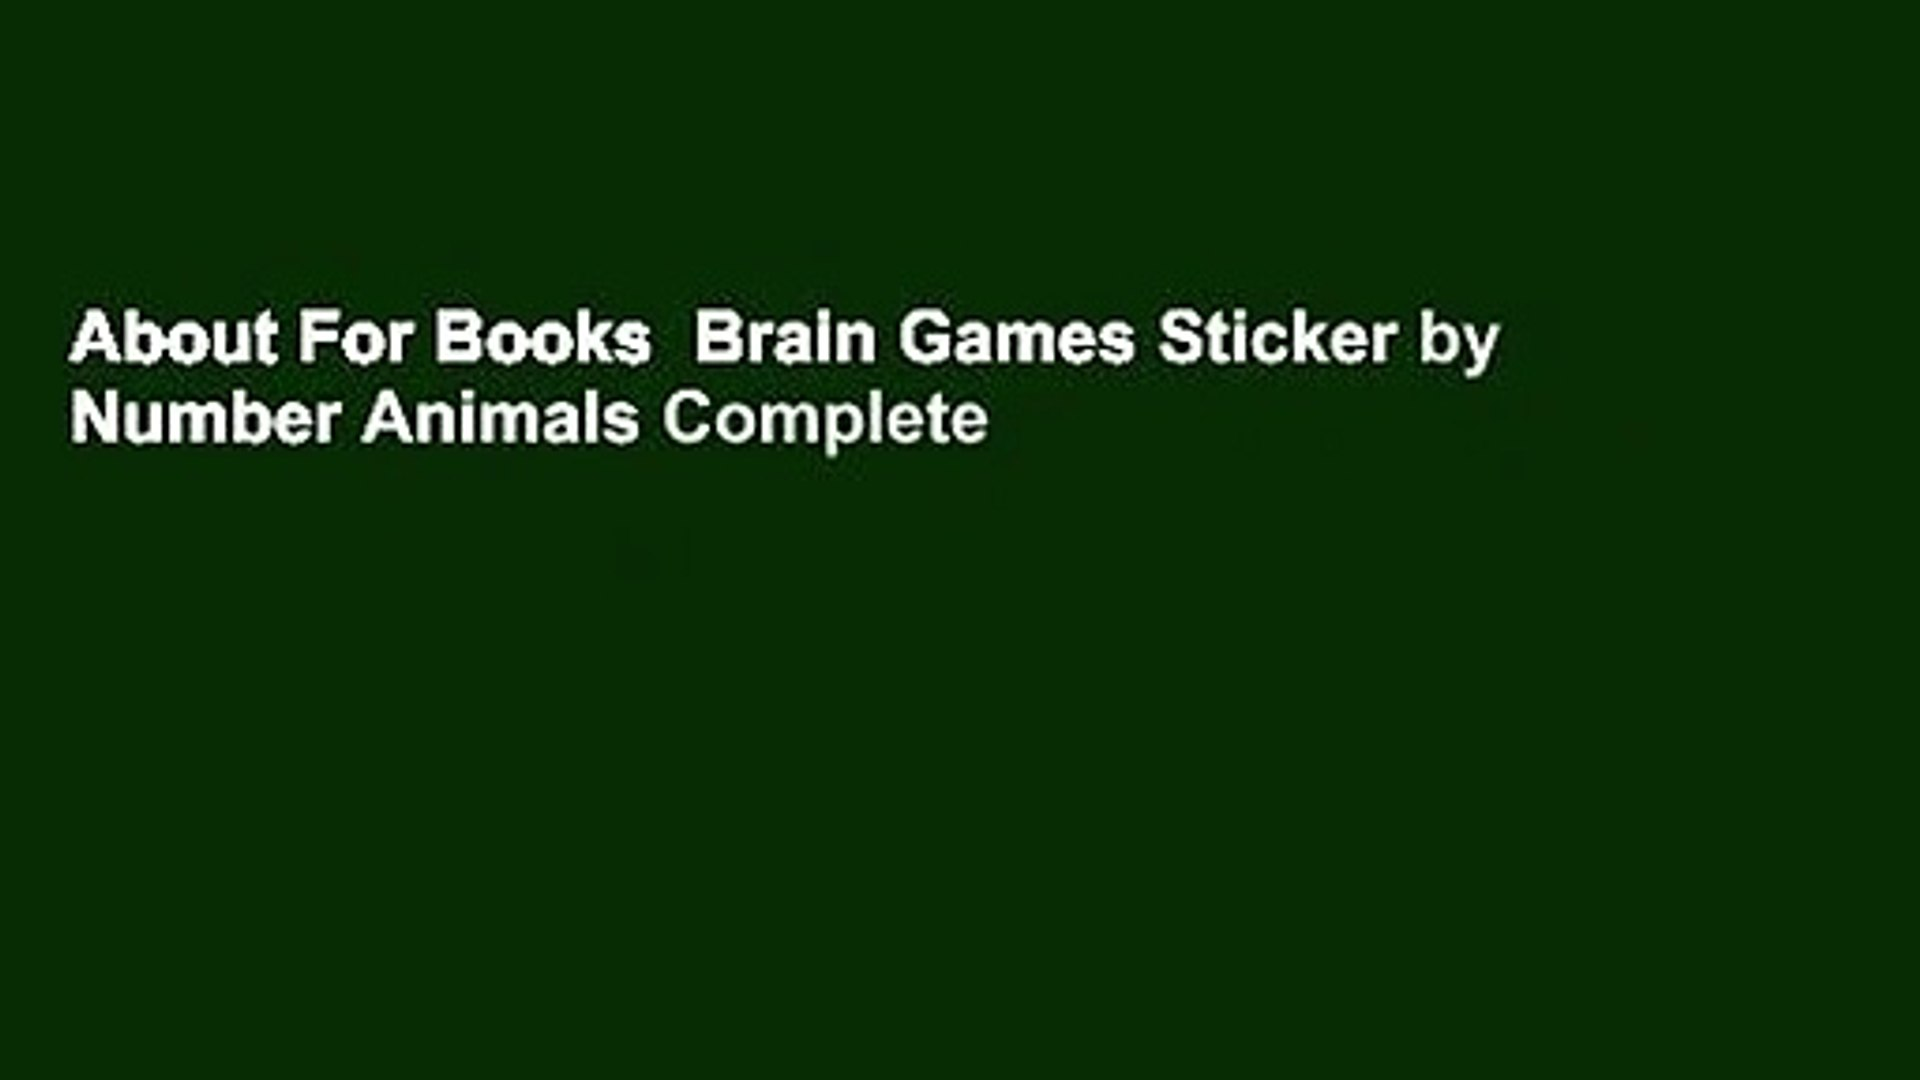 About For Books Brain Games Sticker By Number Animals